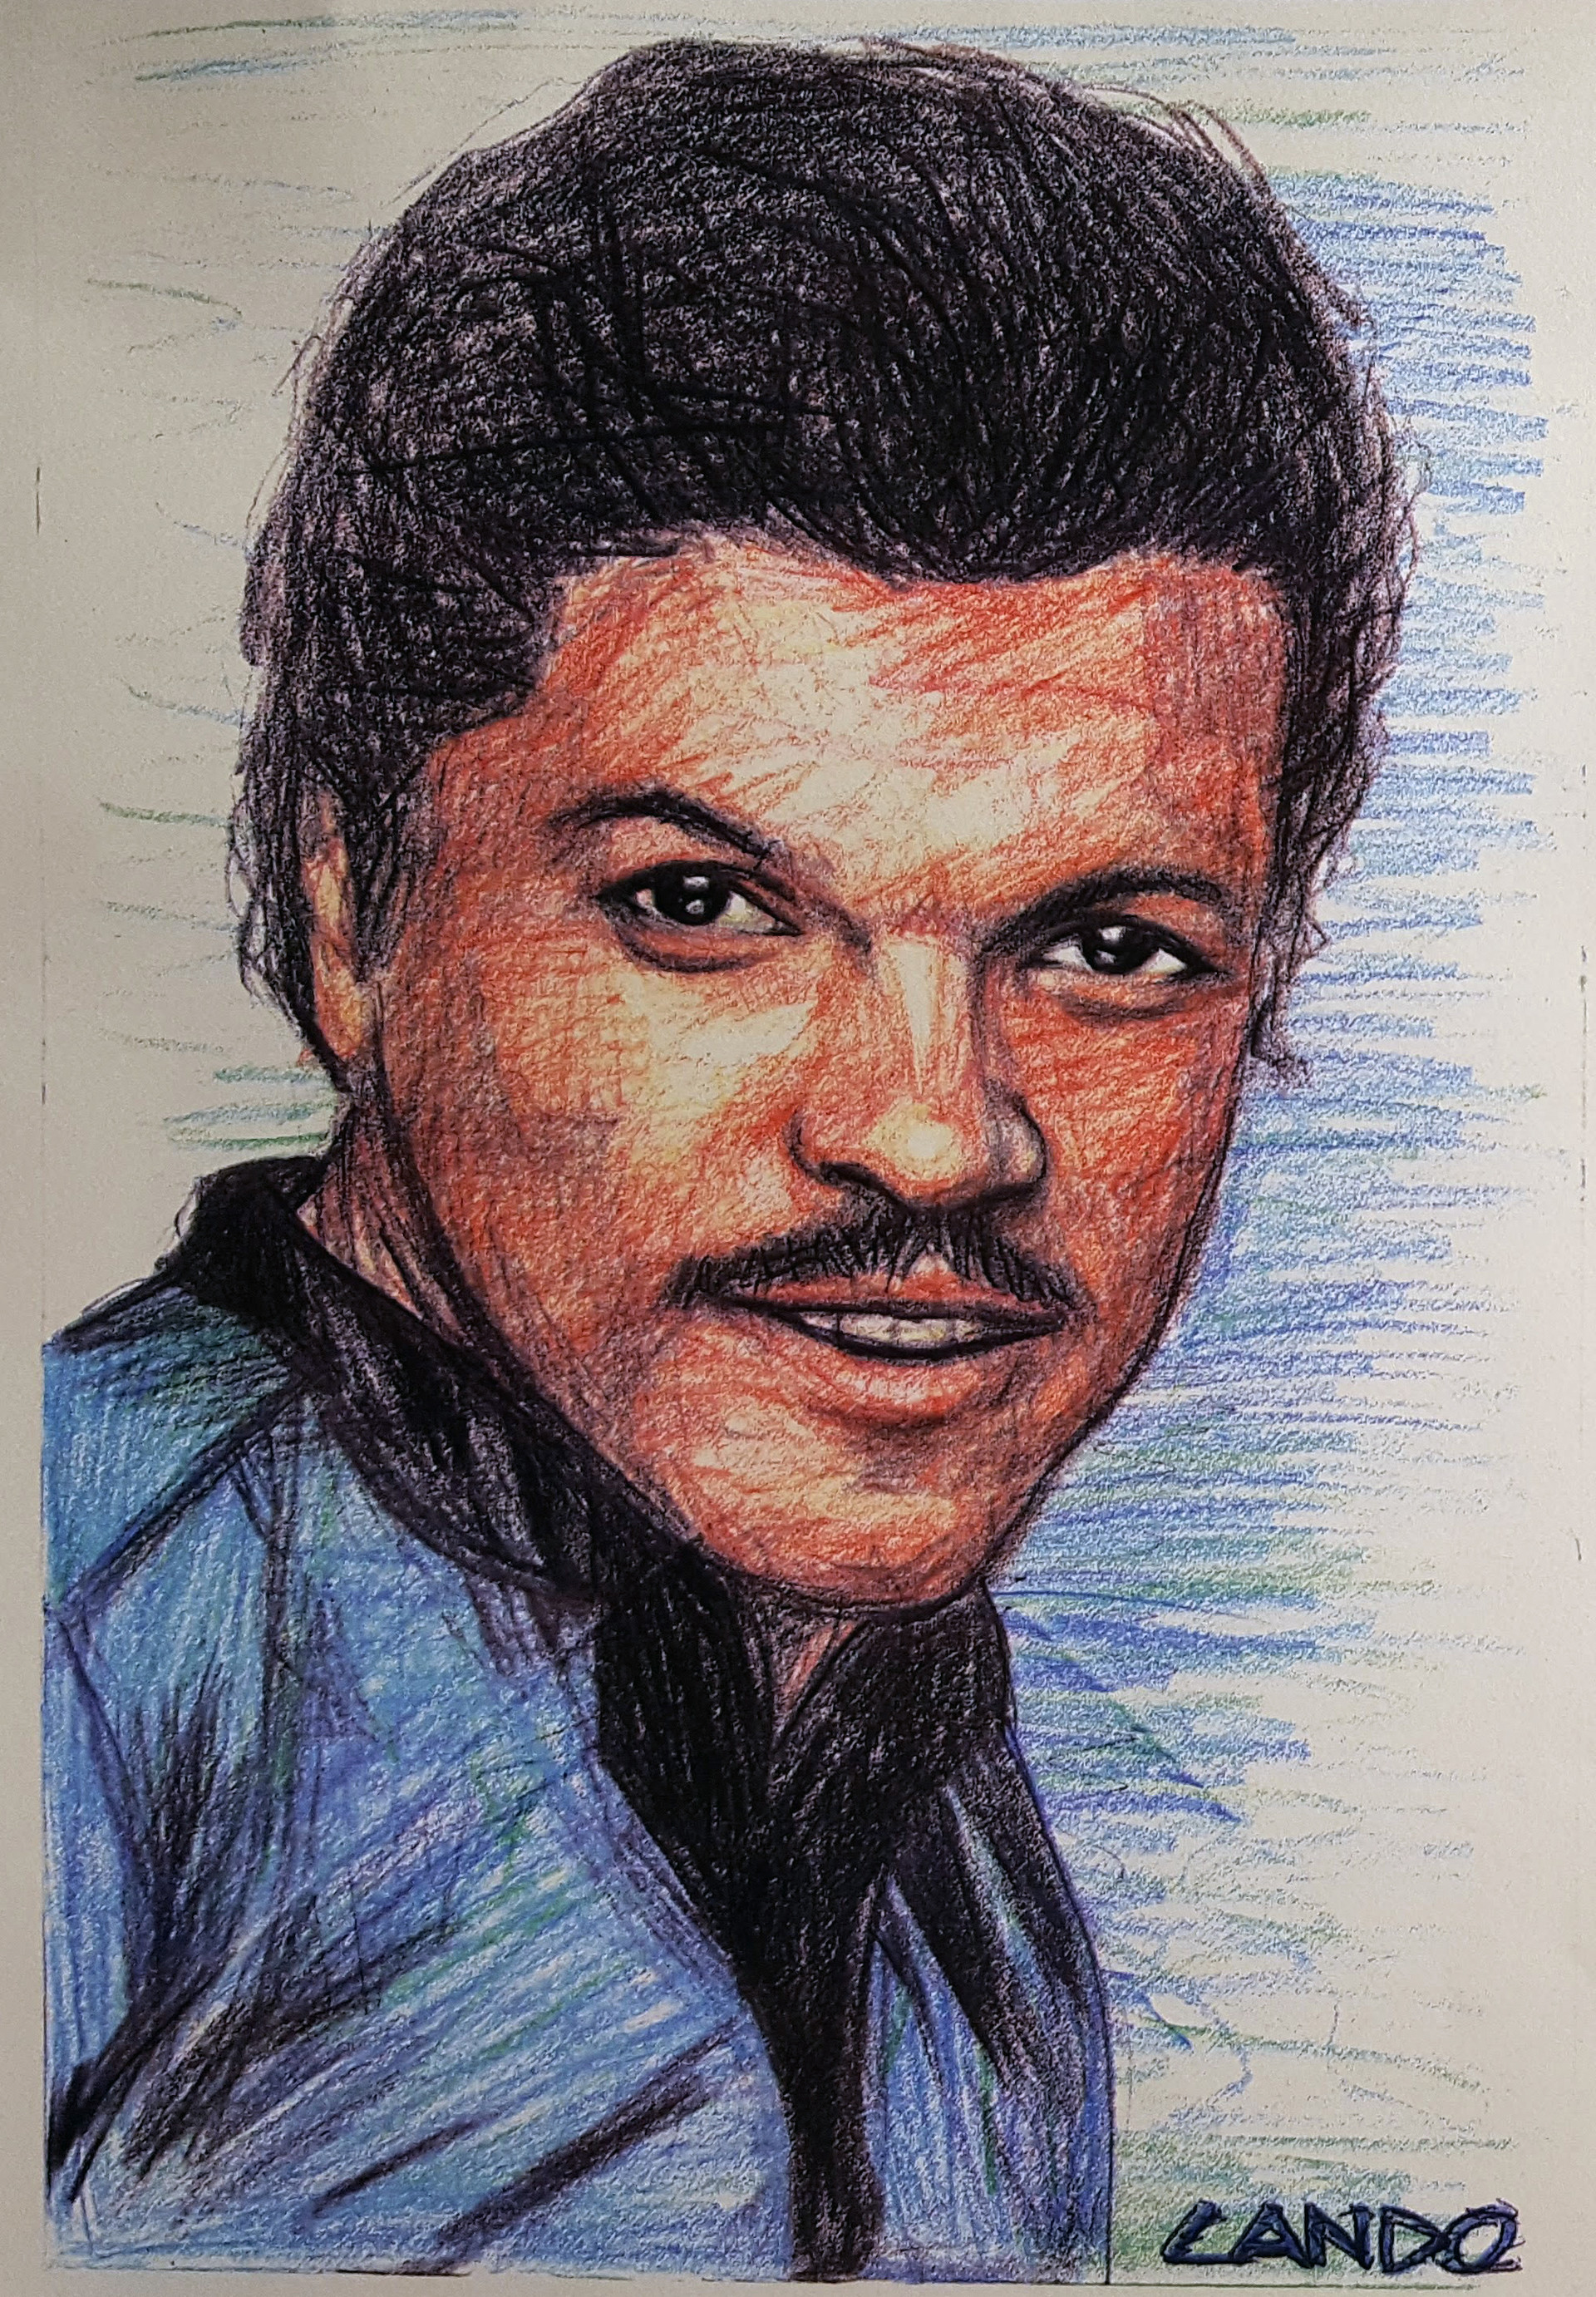 Another envelope sent to SWGC; portrait of Lando.